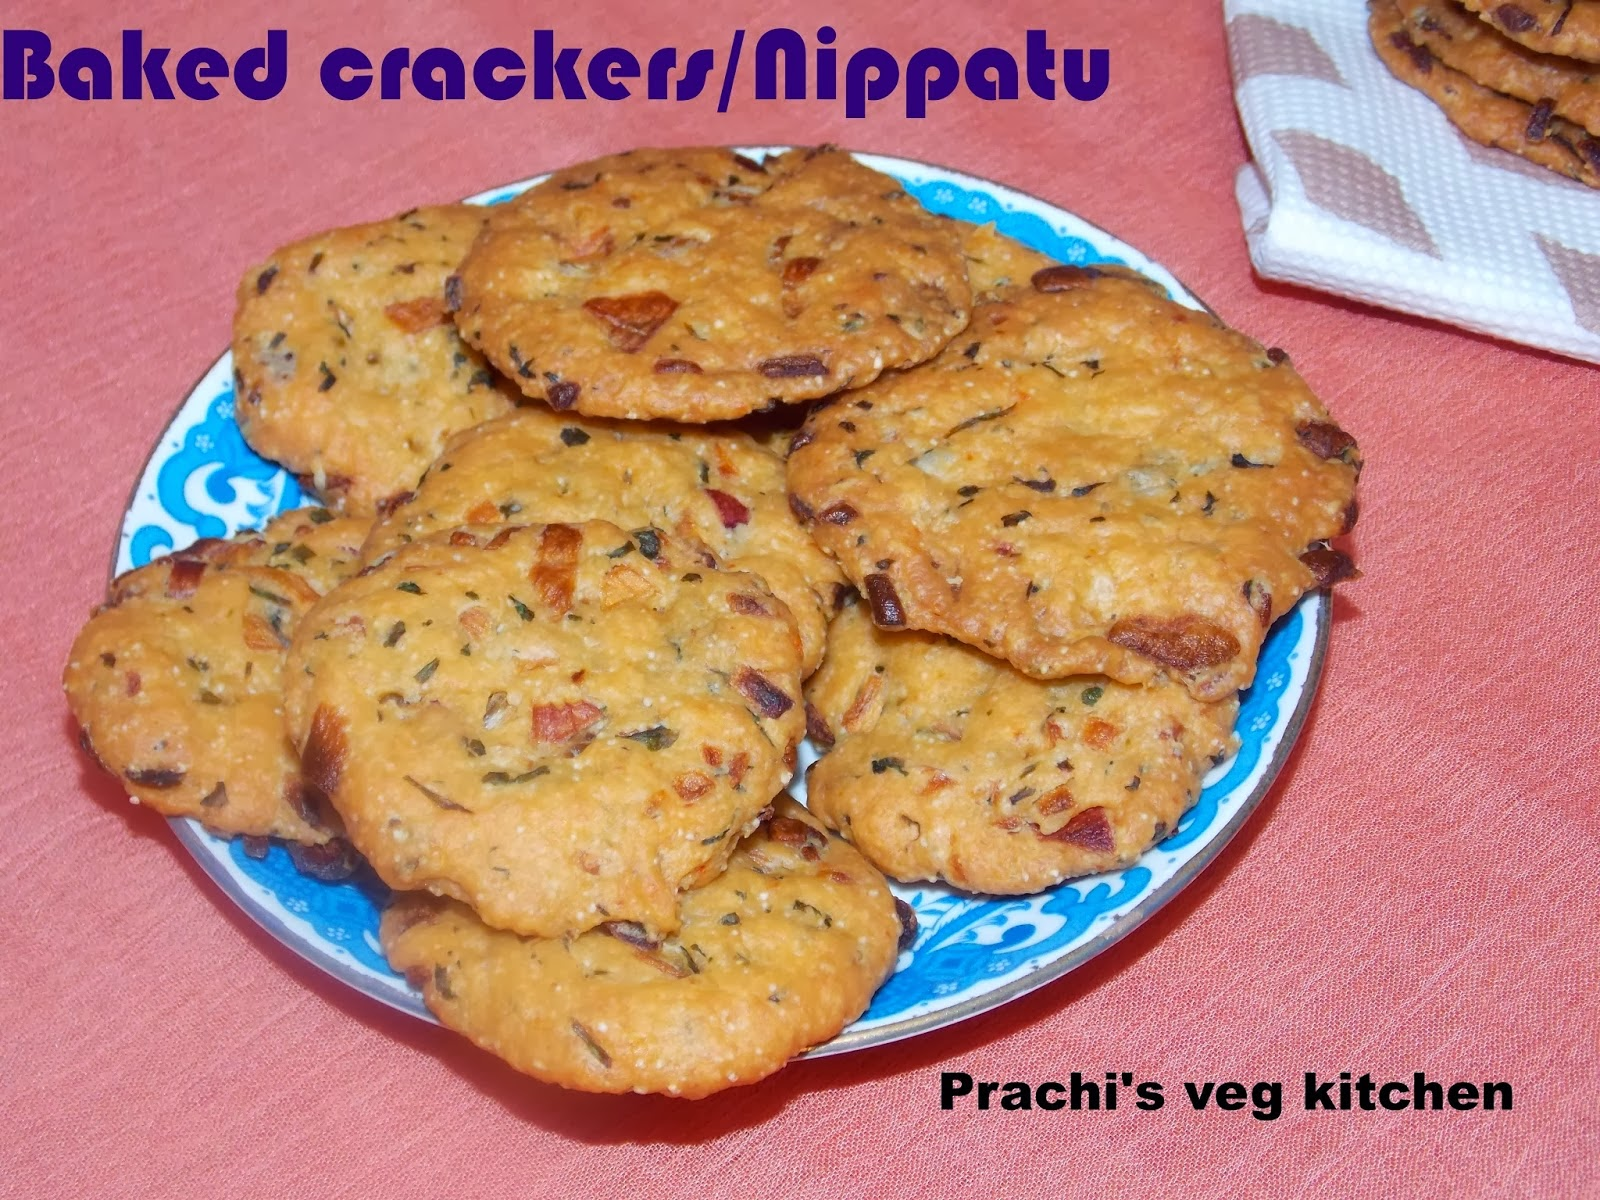 http://prachisvegkitchen.blogspot.in/2014/02/baked-cracker-nippatu.html#more